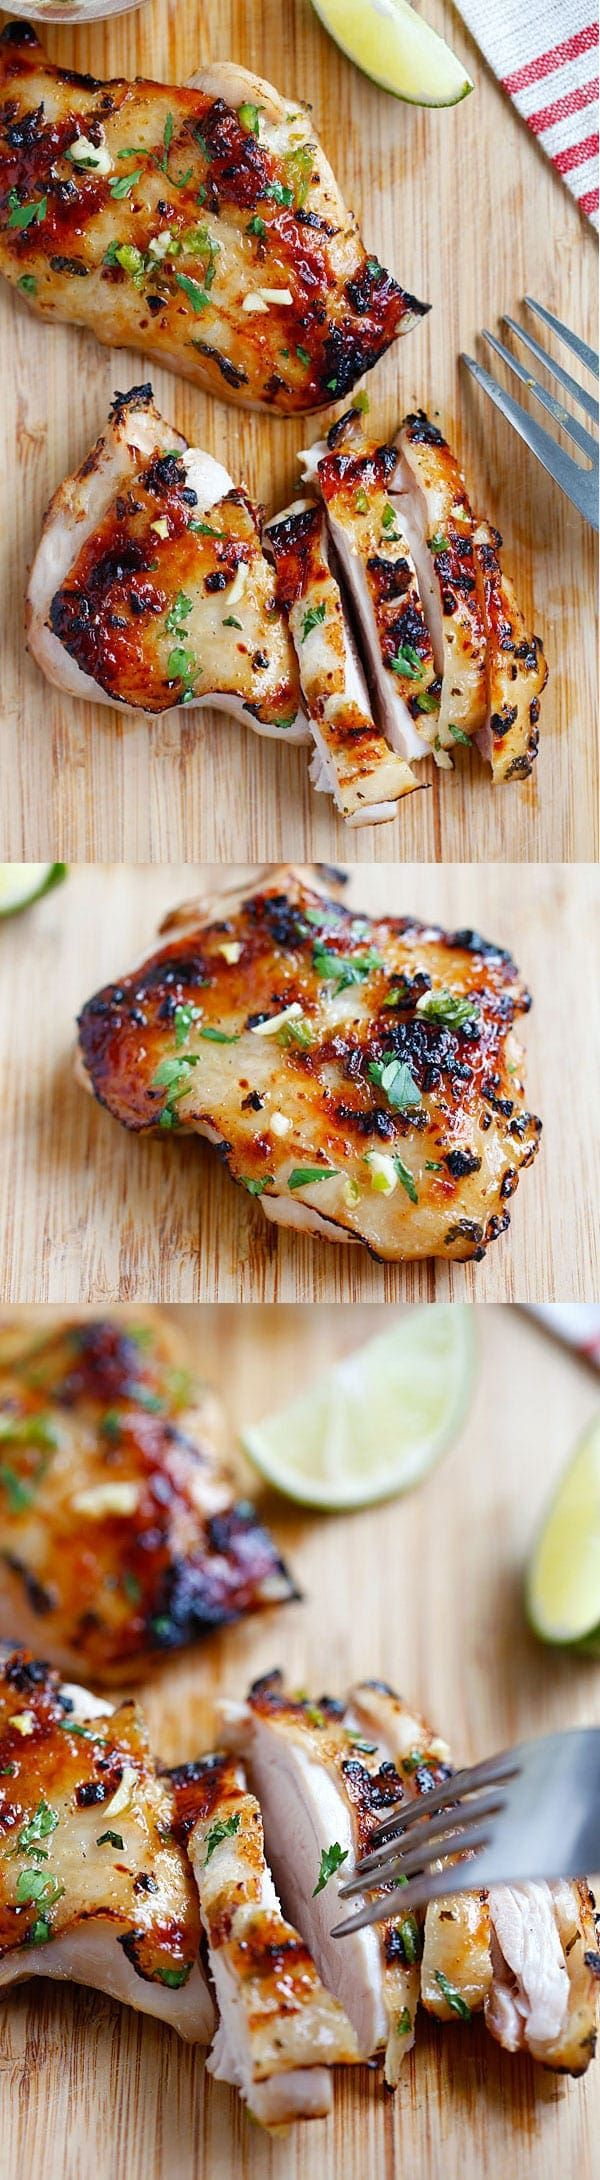 Chili lime chicken - moist and delicious chicken marinated with chili and lime and grill to perfection. Easy recipe that takes 30 mins!   rasamalaysia.com